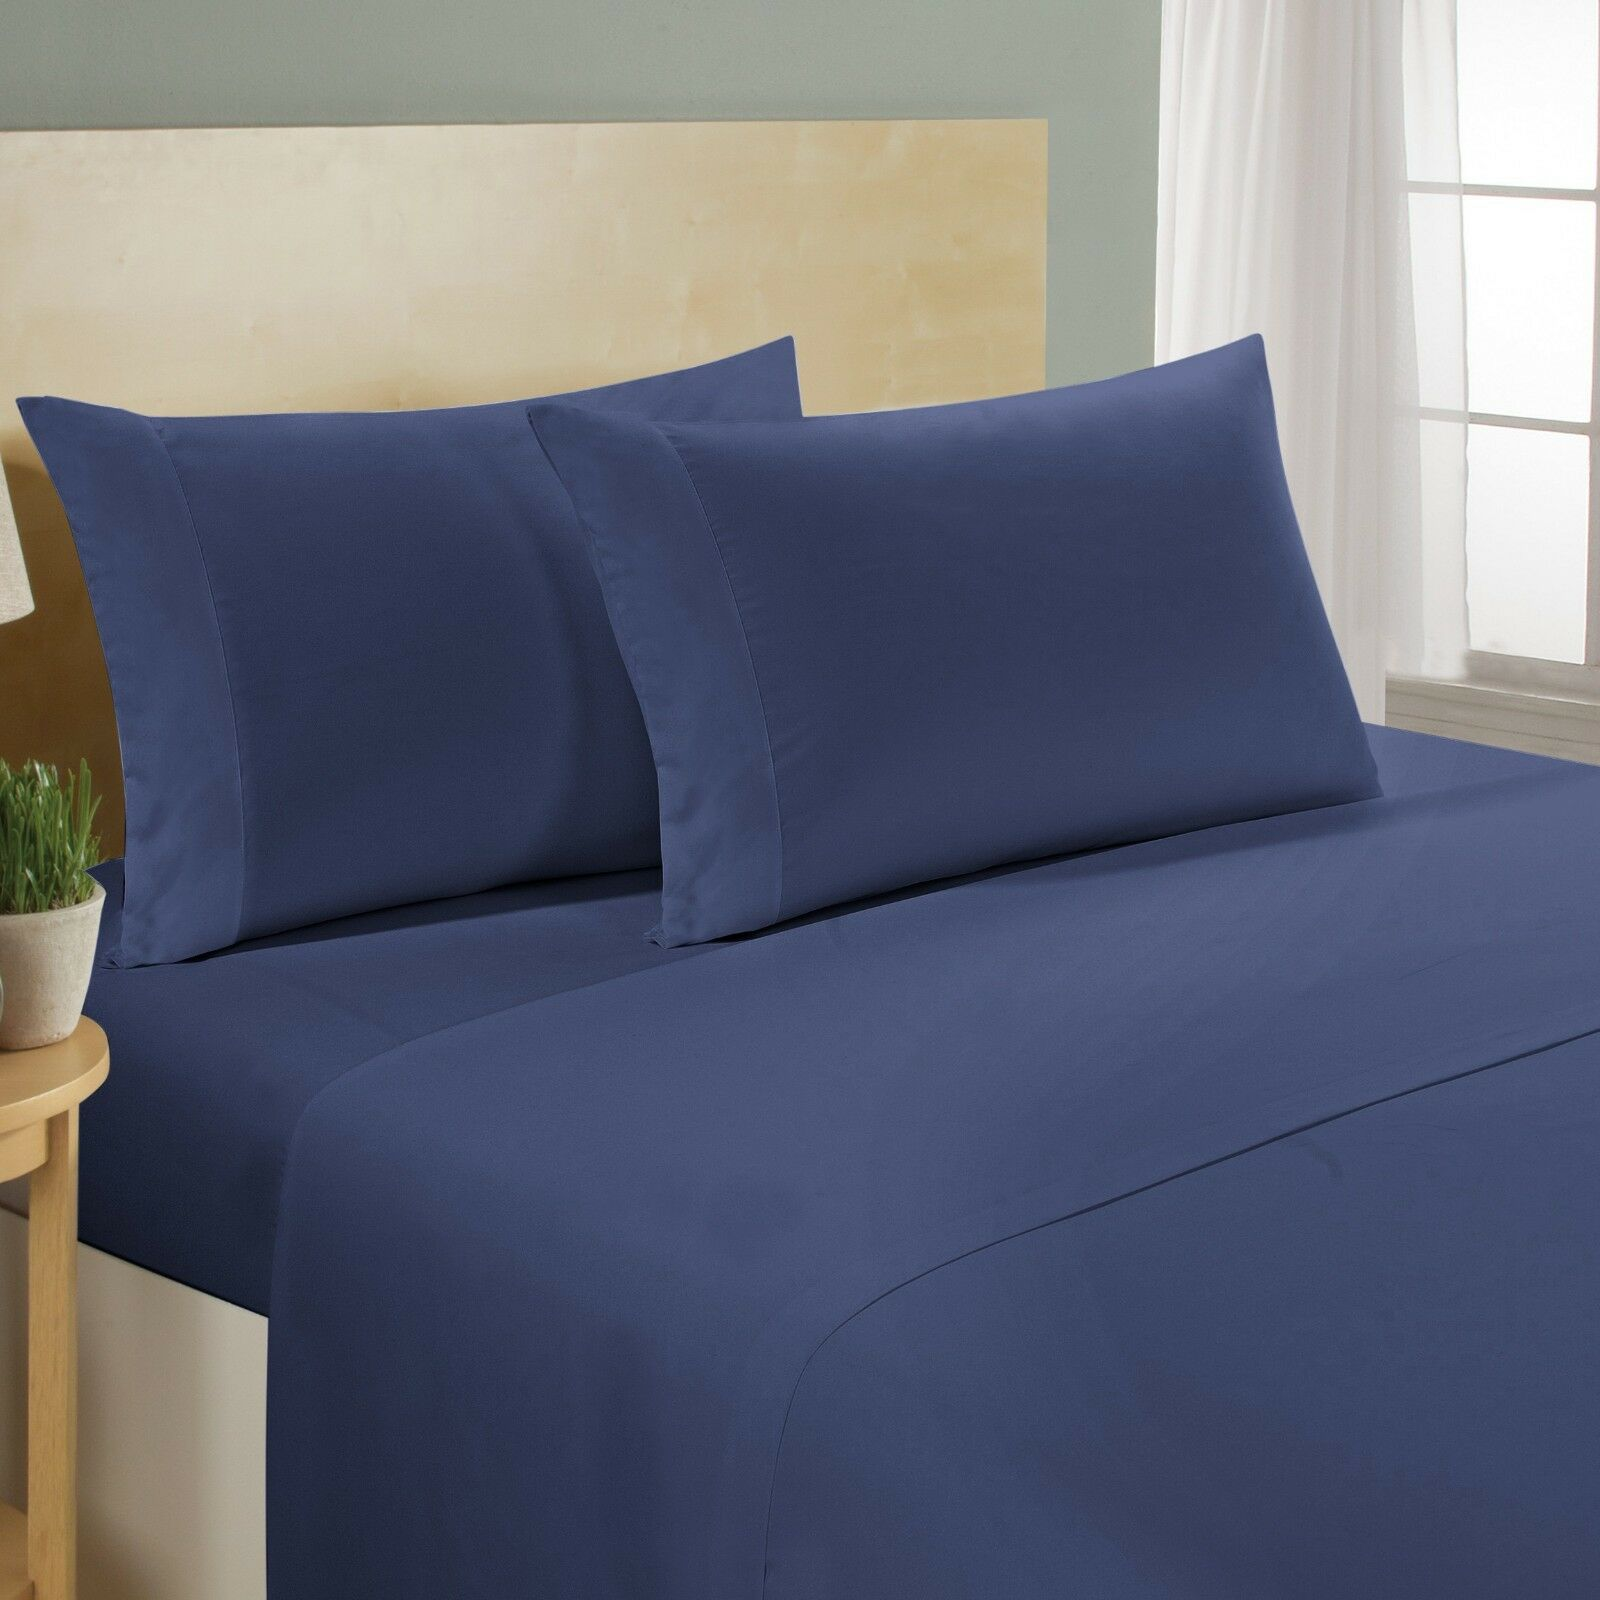 Navy bluee Solid Bedding Item 600 Thread Count 100% Cotton All Size Available.